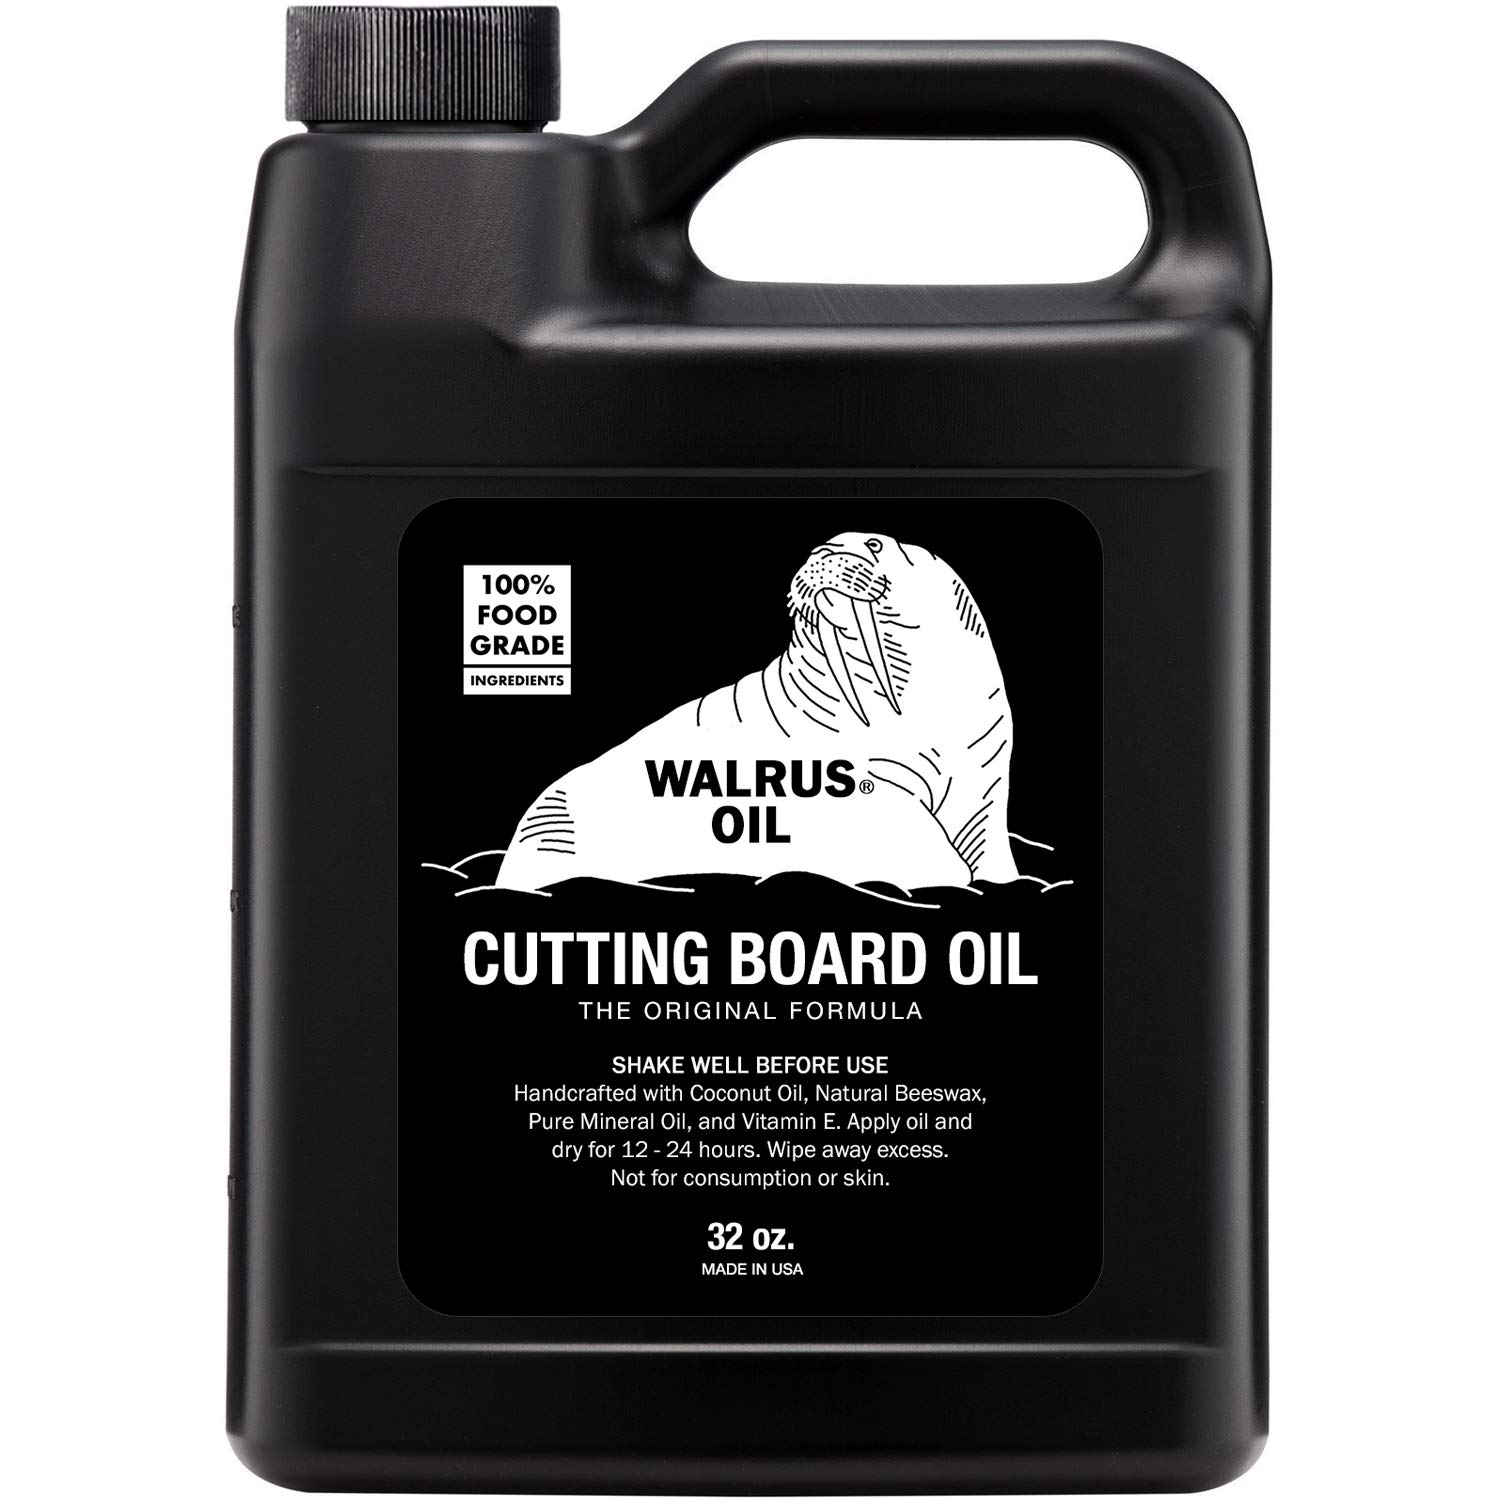 WALRUS OIL - Cutting Board Oil and Wood Butcher Block Oil, 32 oz Jug, Food-Safe by Walrus Oil